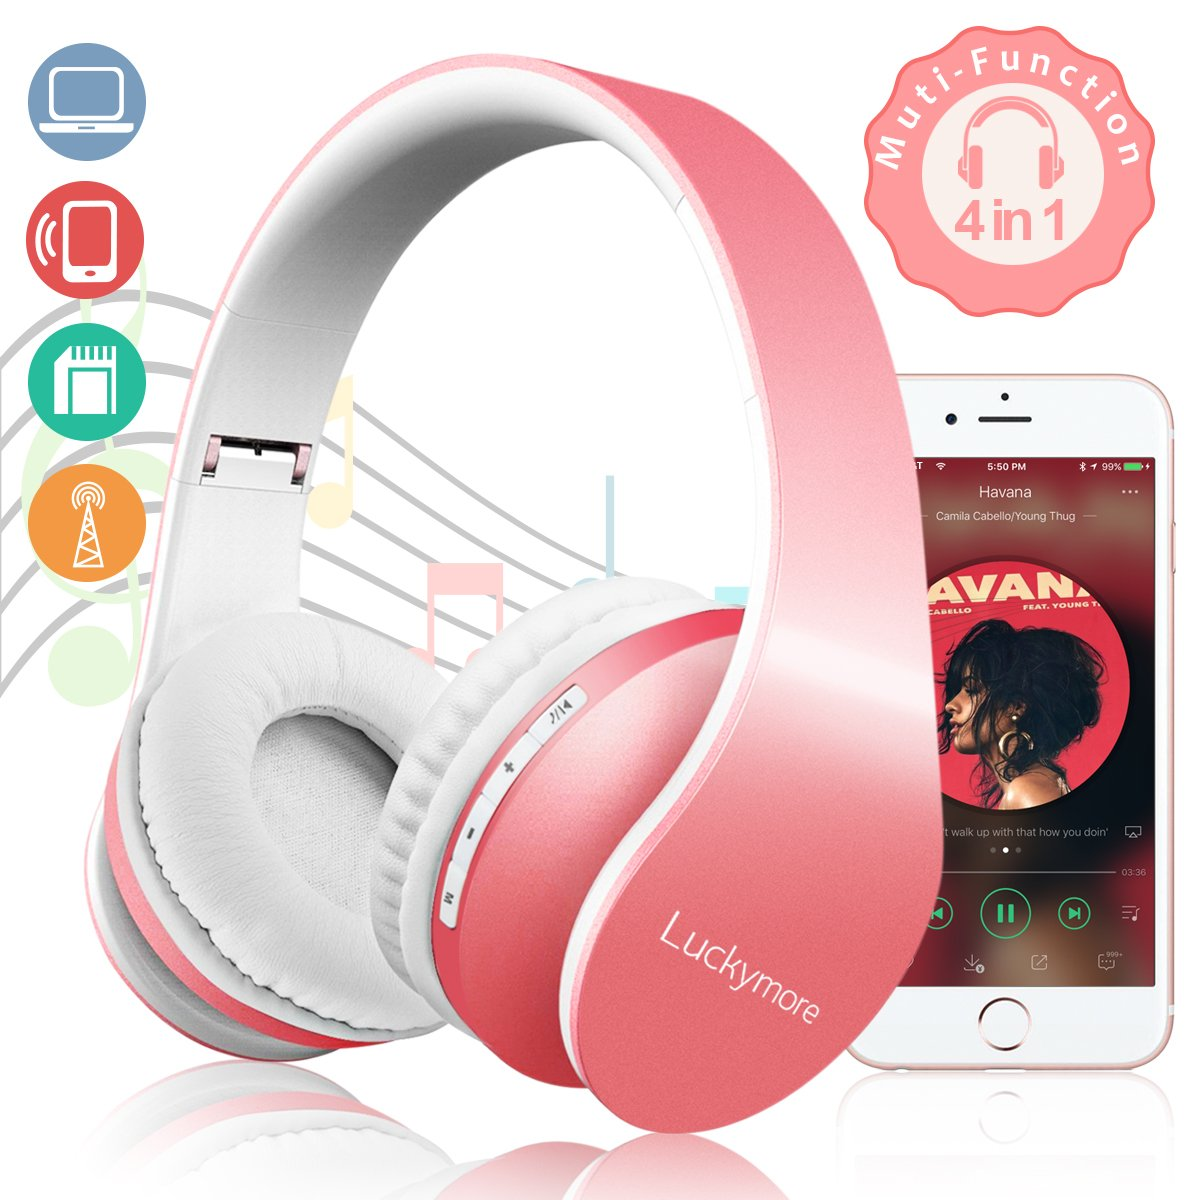 Bluetooth Headphones Hi-Fi Stereo Wireless Headset Over Ear Headphones Noise Cancelling Foldable Earphones, Soft Memory-Protein Earmuffs, Built-in Mic for PC/Cell Phones/TV Bluetooth Device for Women